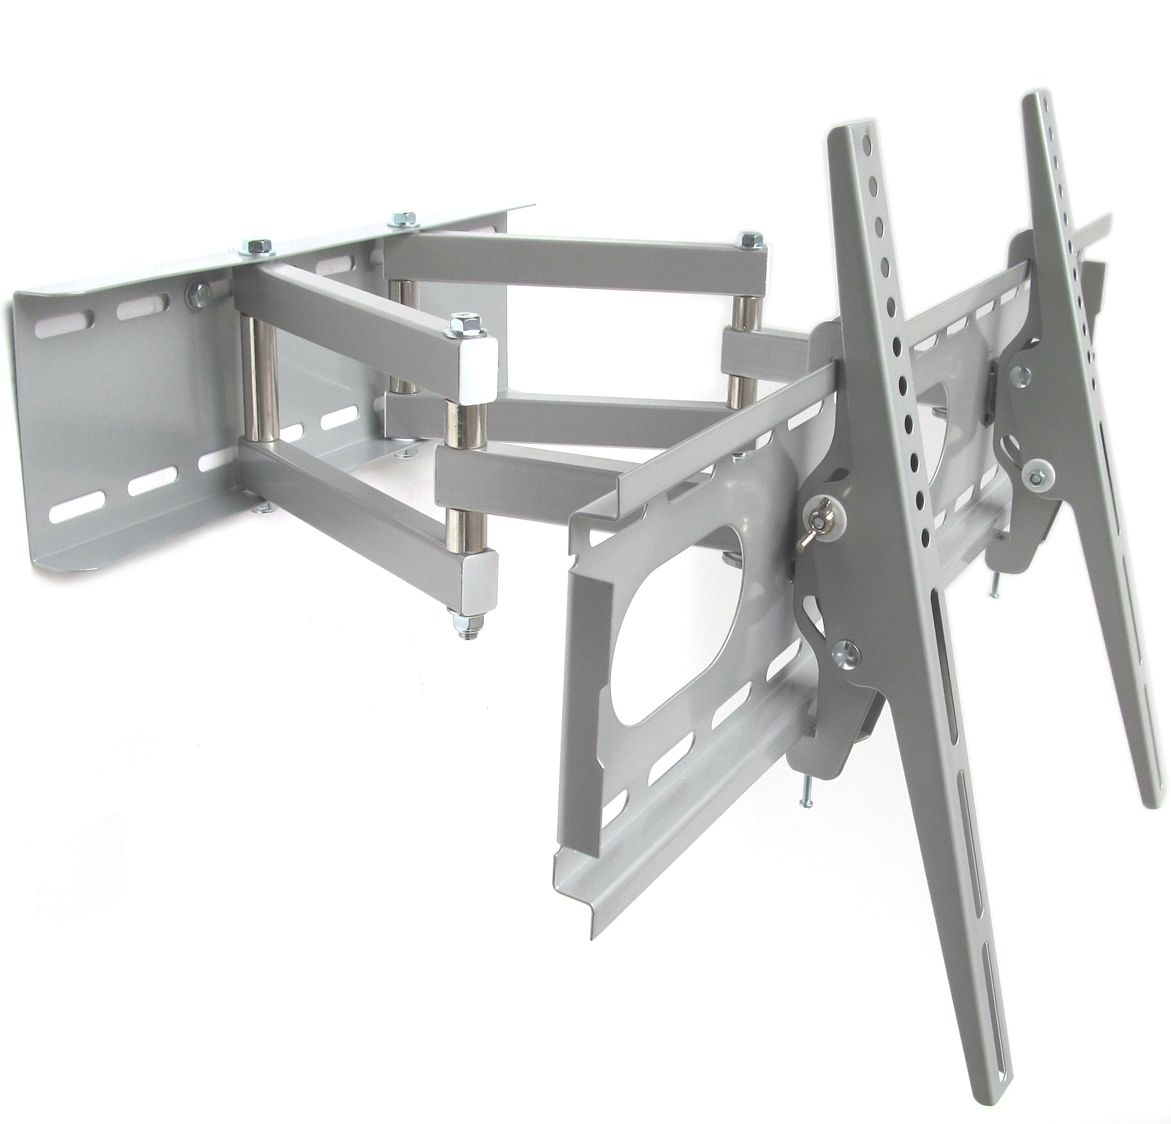 Telescoping Tv Arm : Wall bracket color silver for all tv double arm